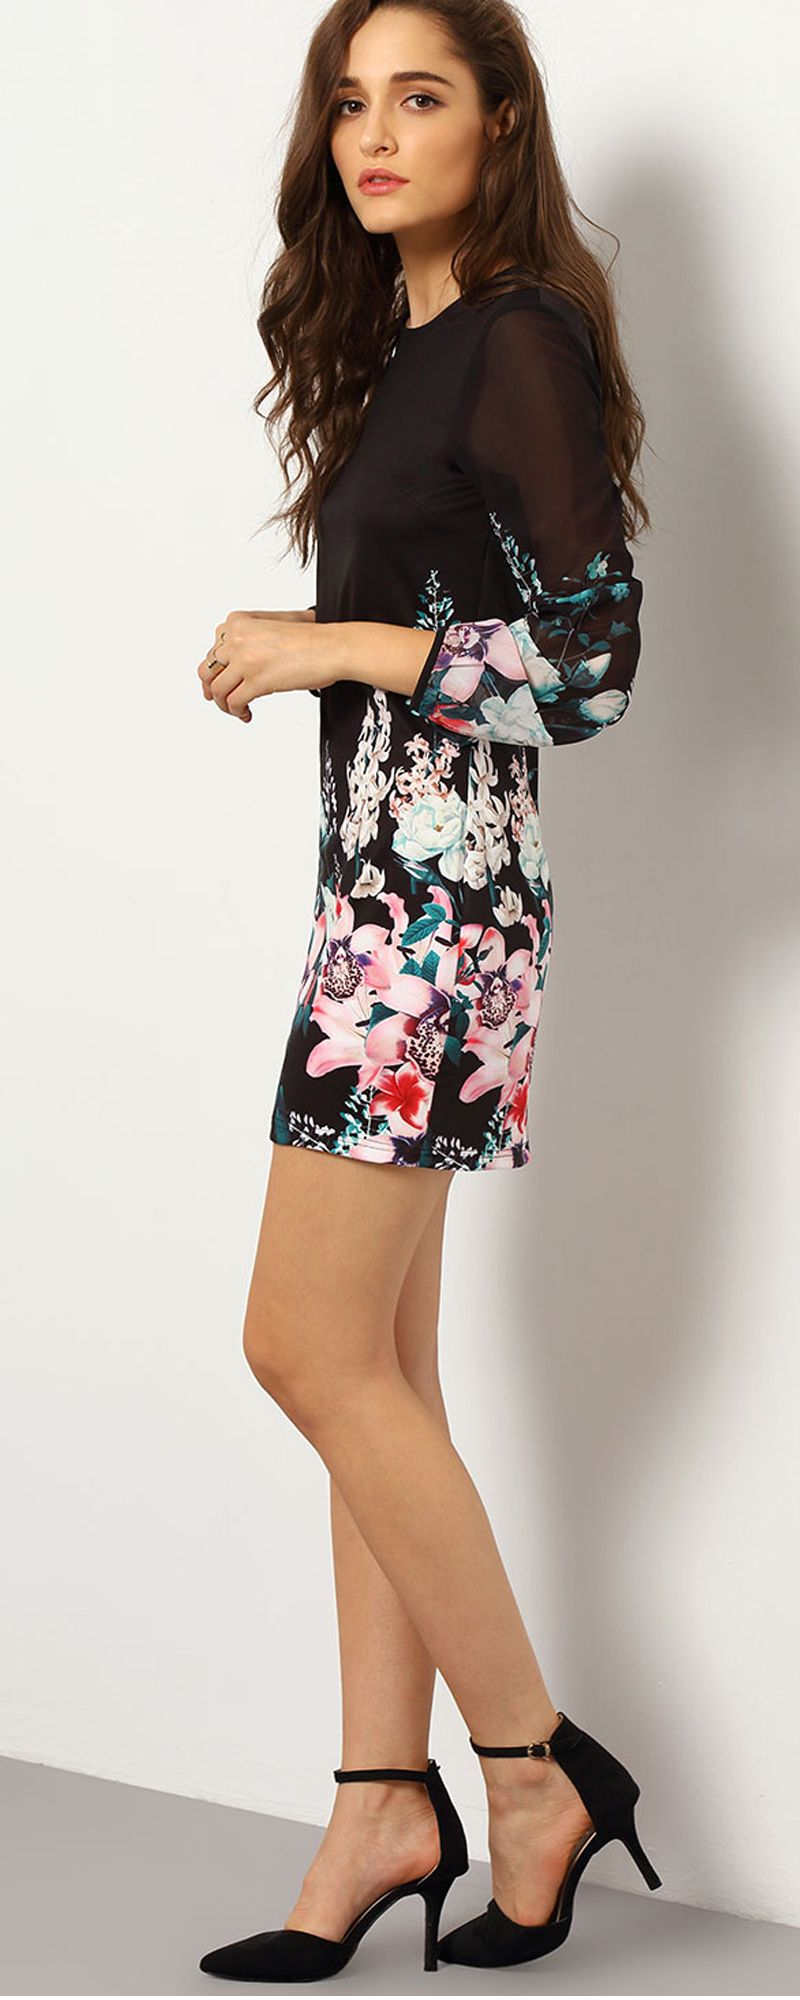 Black Long Sleeve Floral Dress - cute for engagement photos, bridal shower, wedding rehearsal dinner or reception outfit!